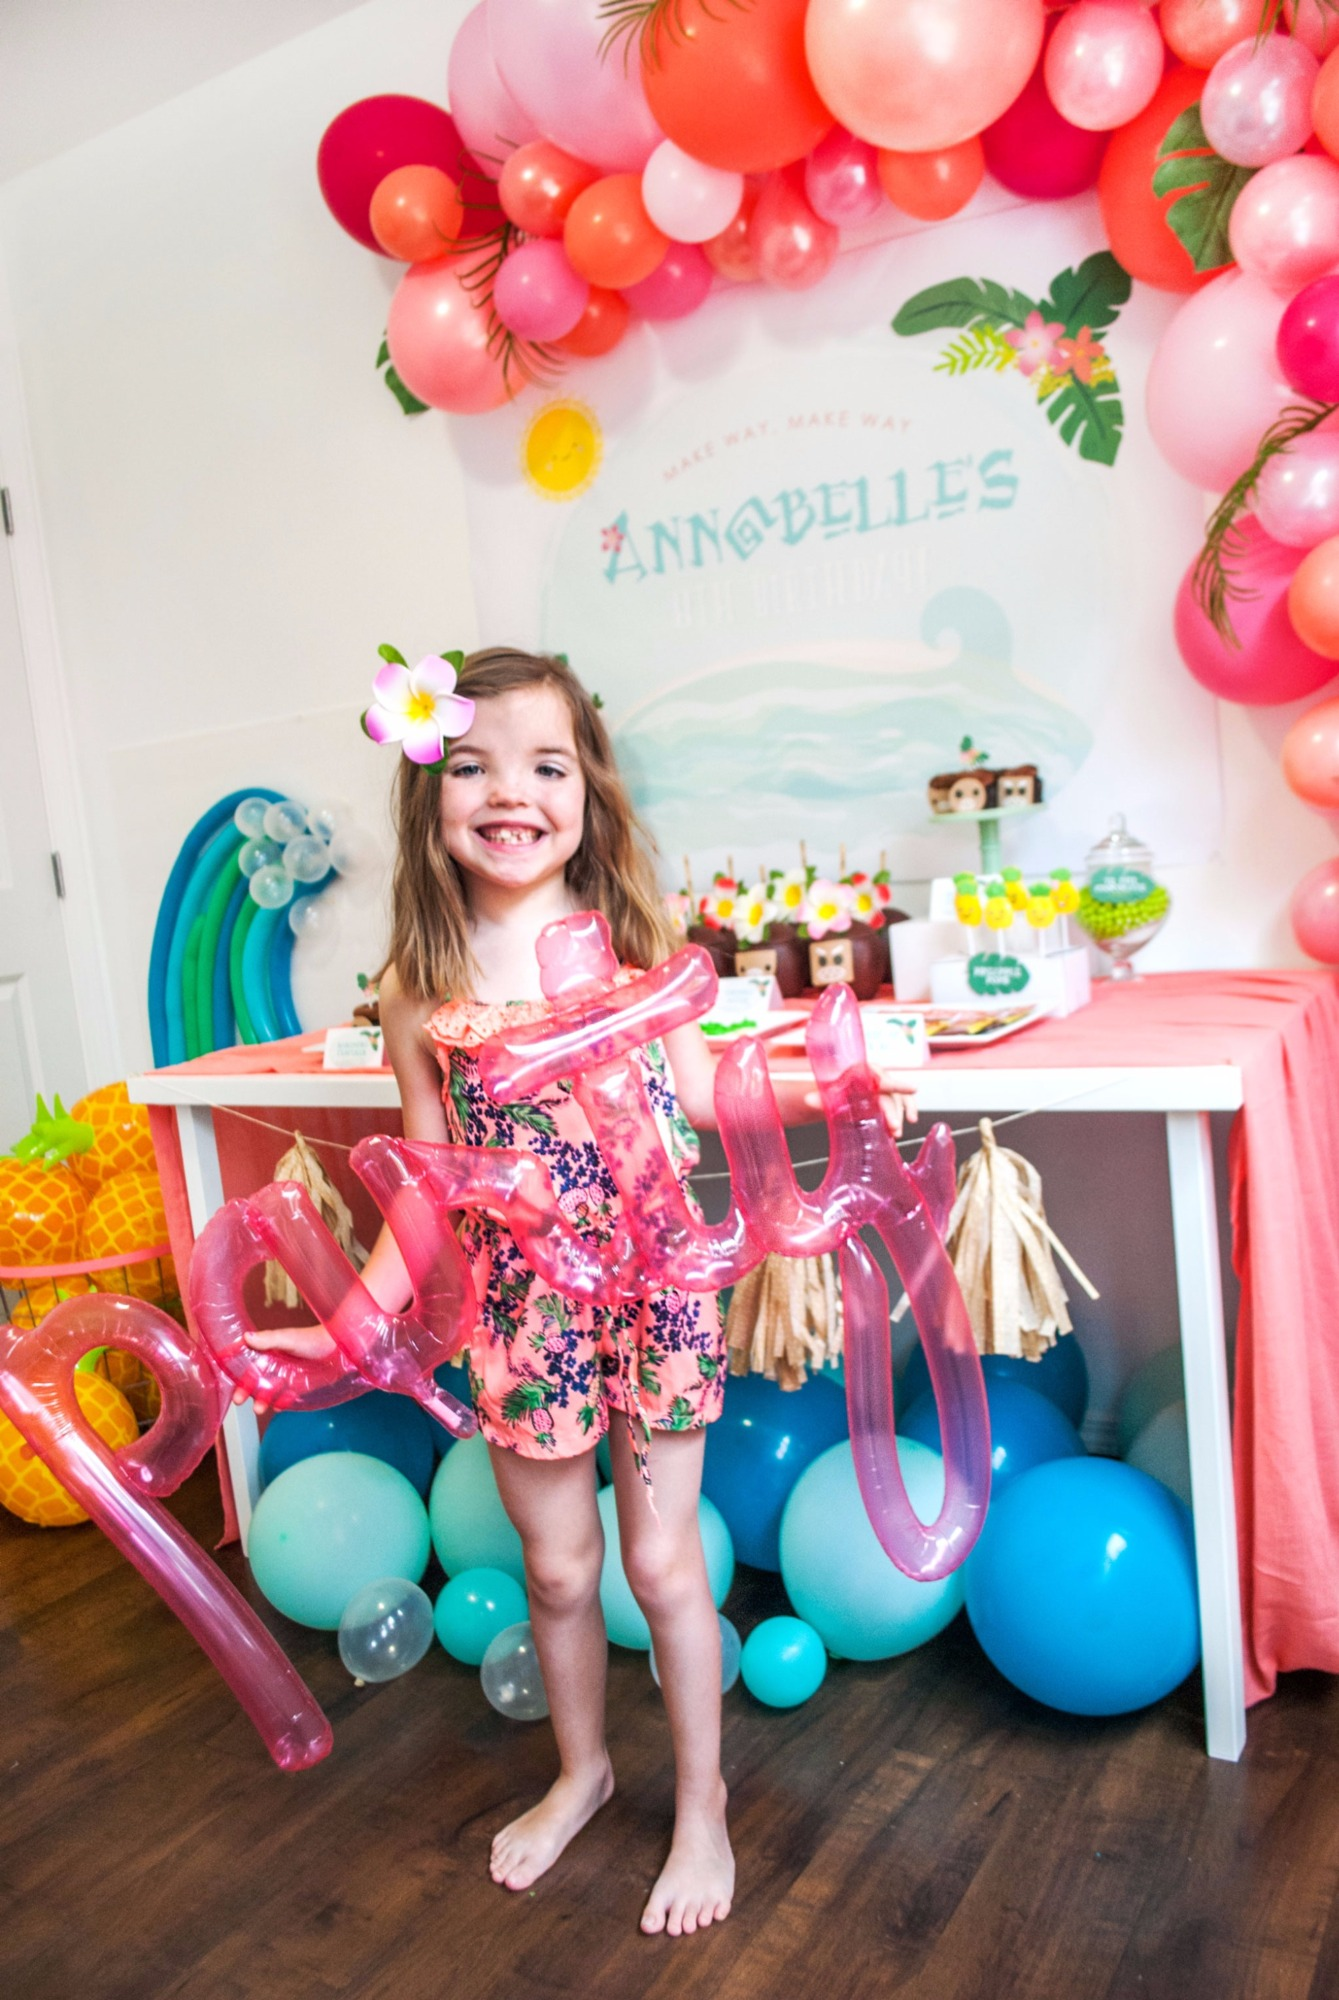 Party Balloon And Birthday Girl From Moana By Itsy Belle Studio